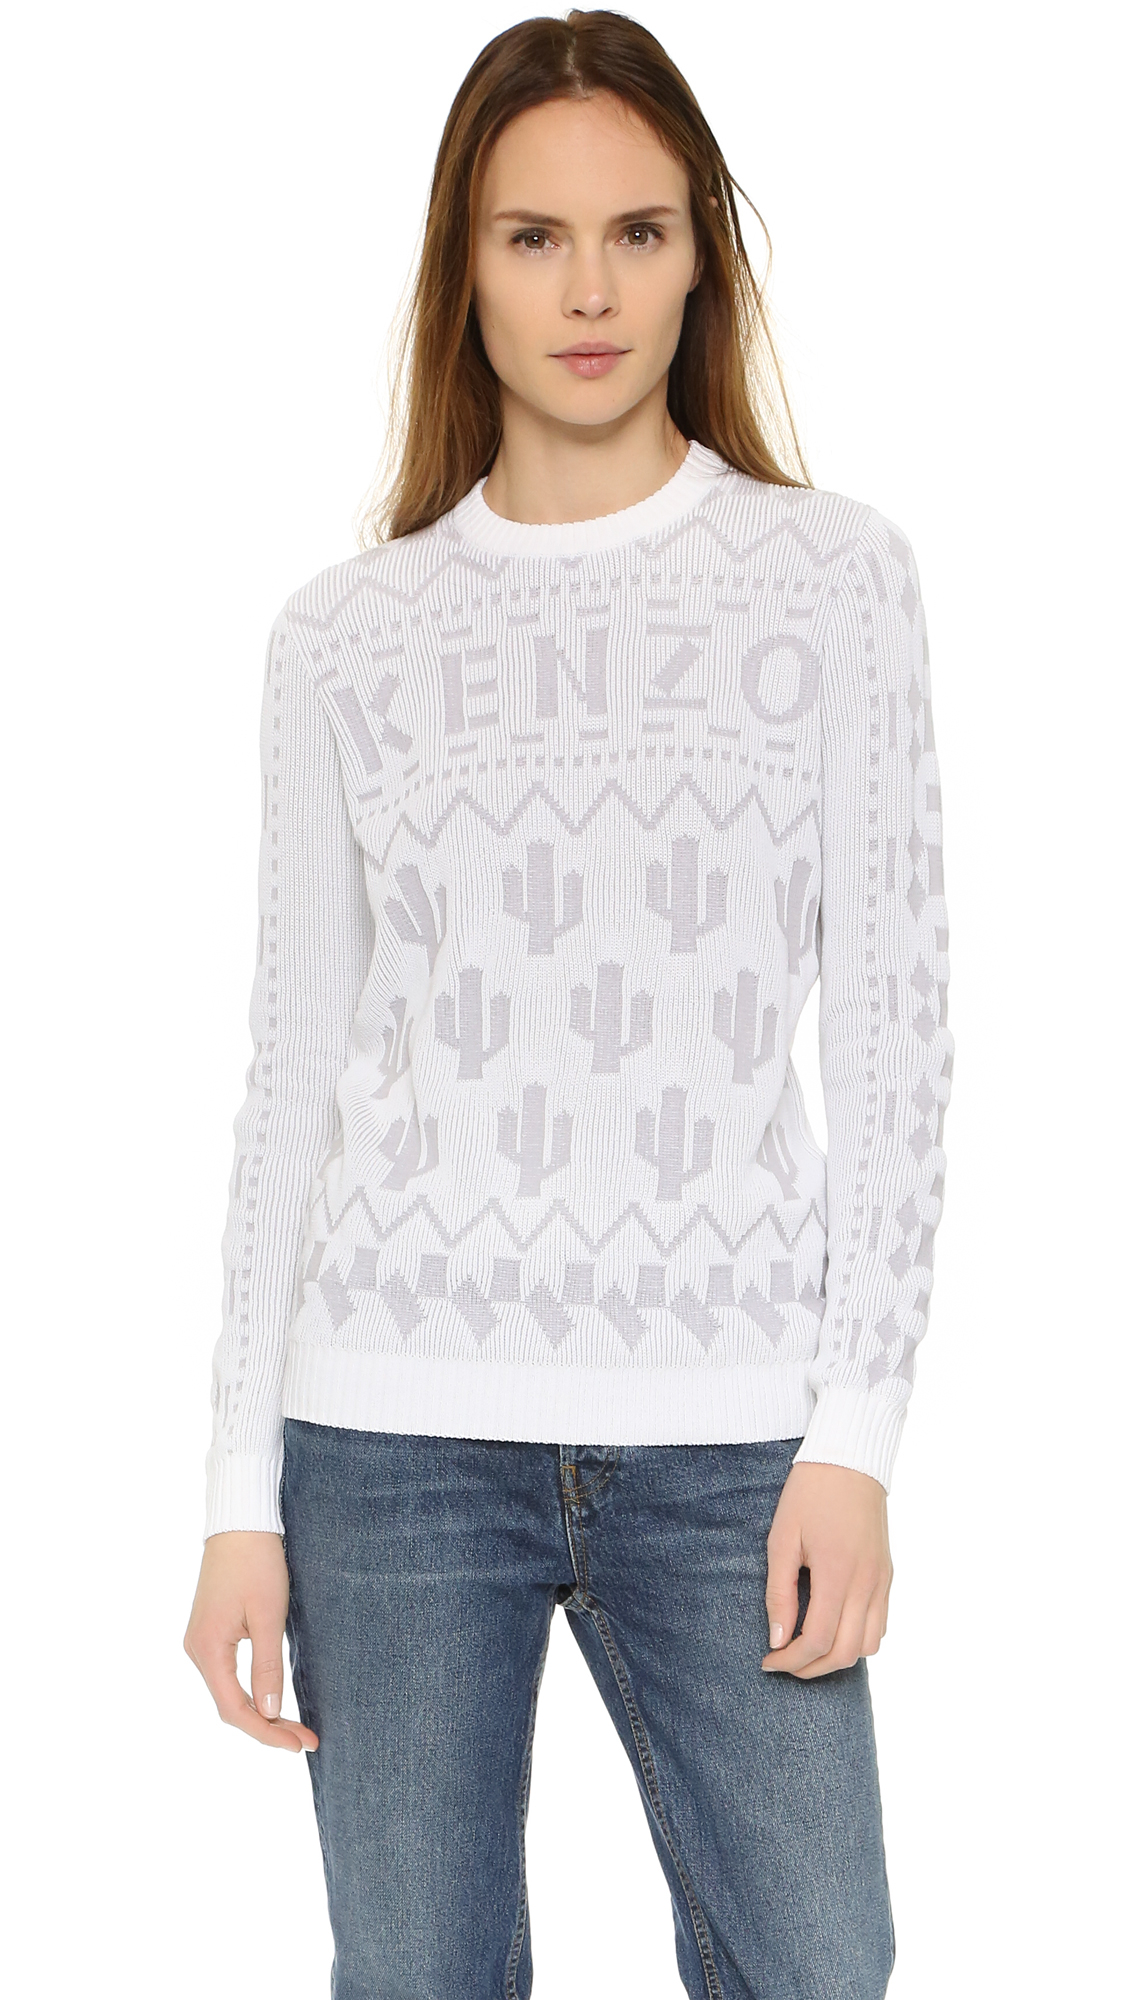 kenzo multi stitch sweater in white lyst. Black Bedroom Furniture Sets. Home Design Ideas